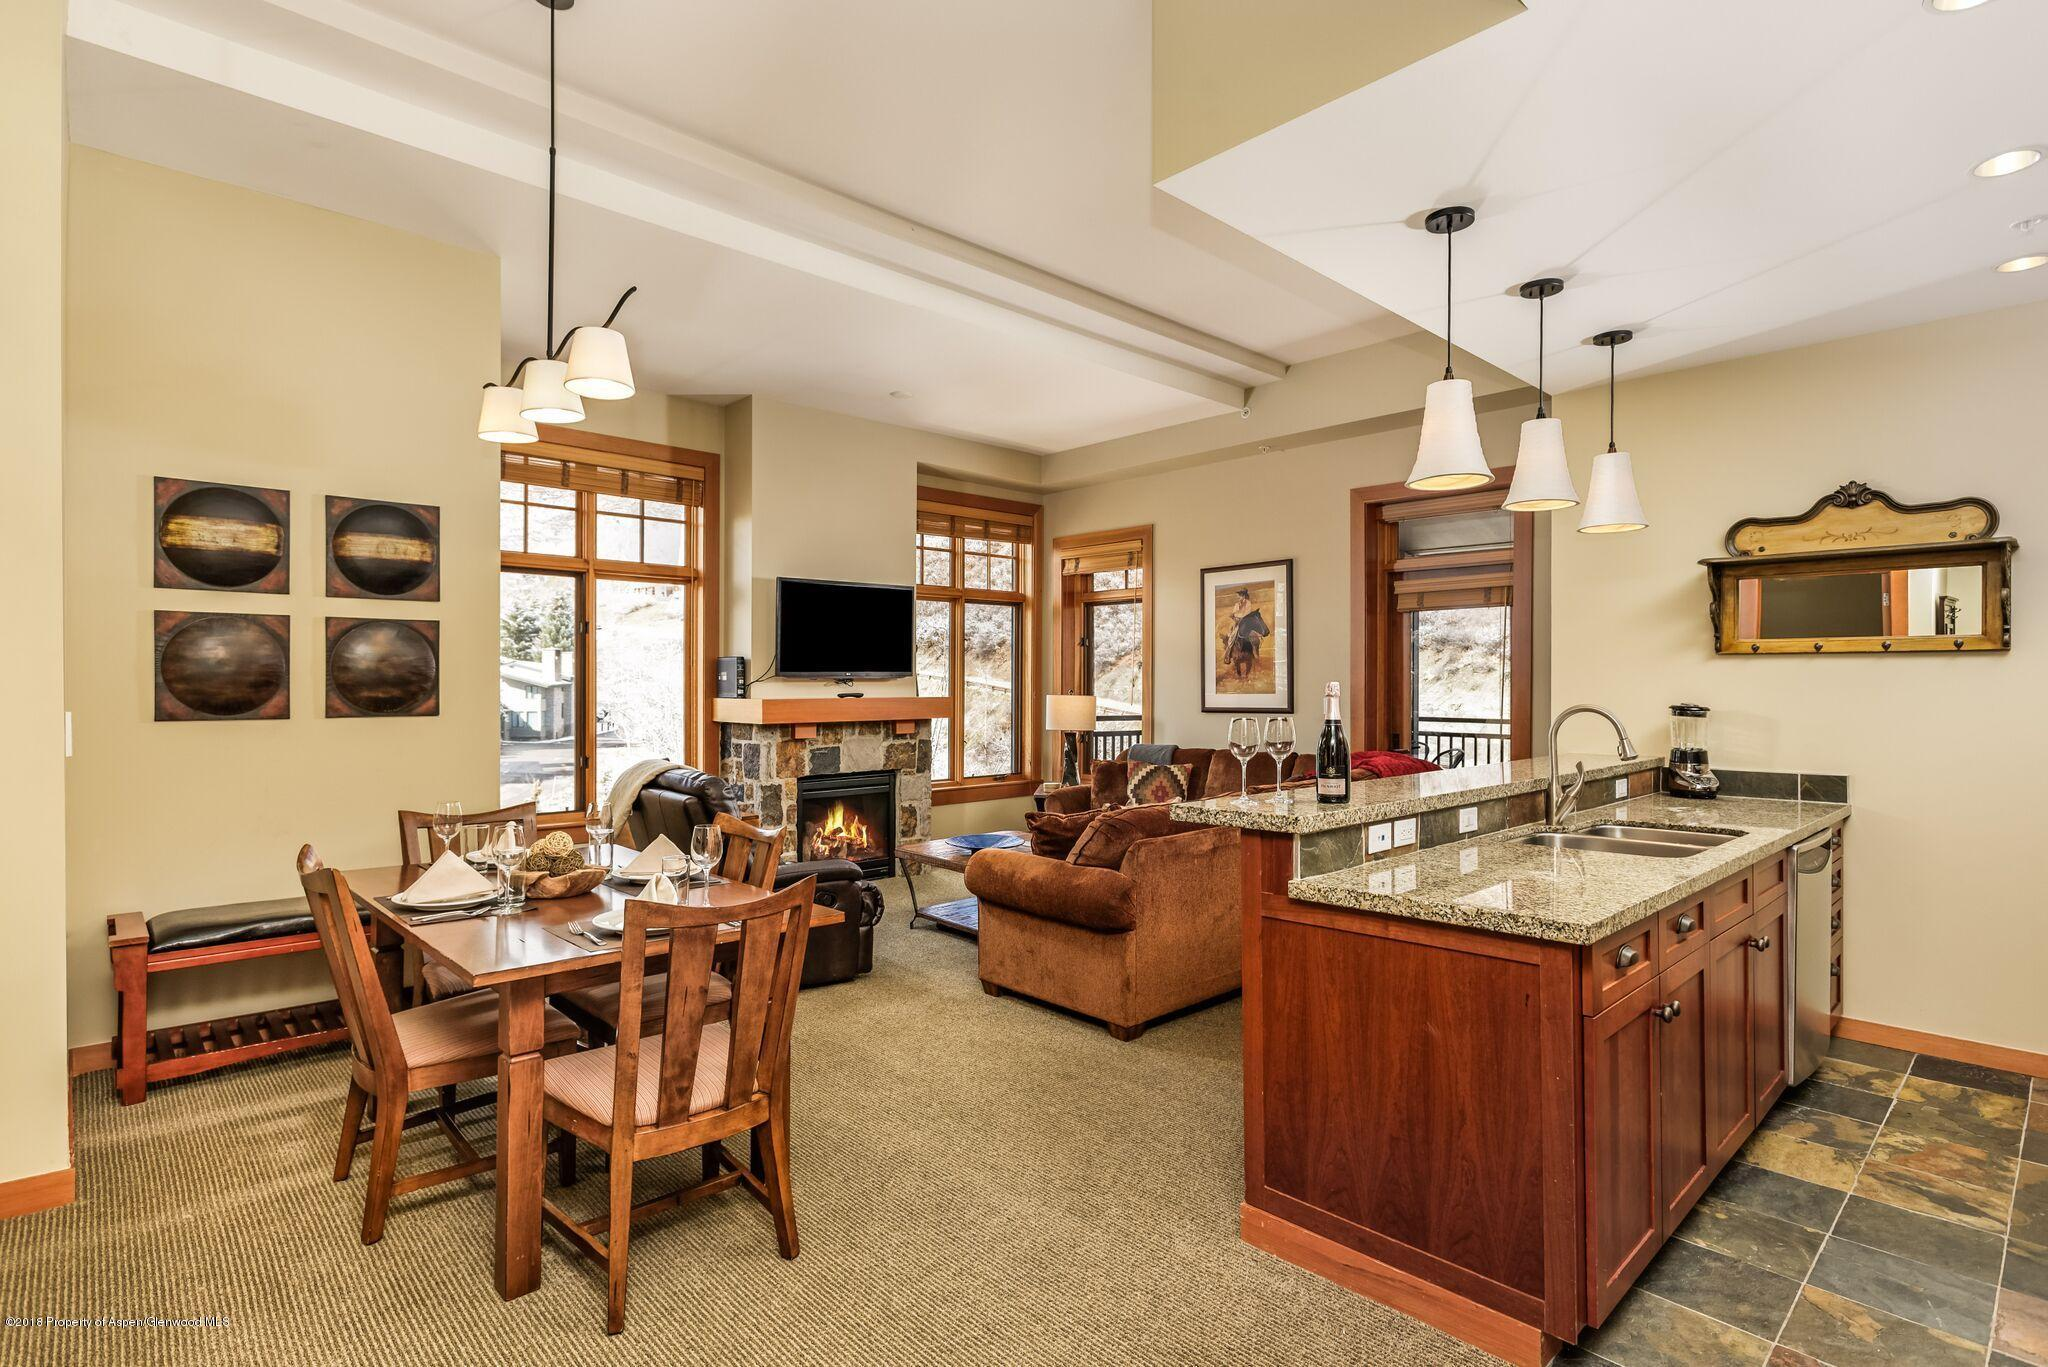 60 Carriage Way, 3127 - Snowmass Village, Colorado